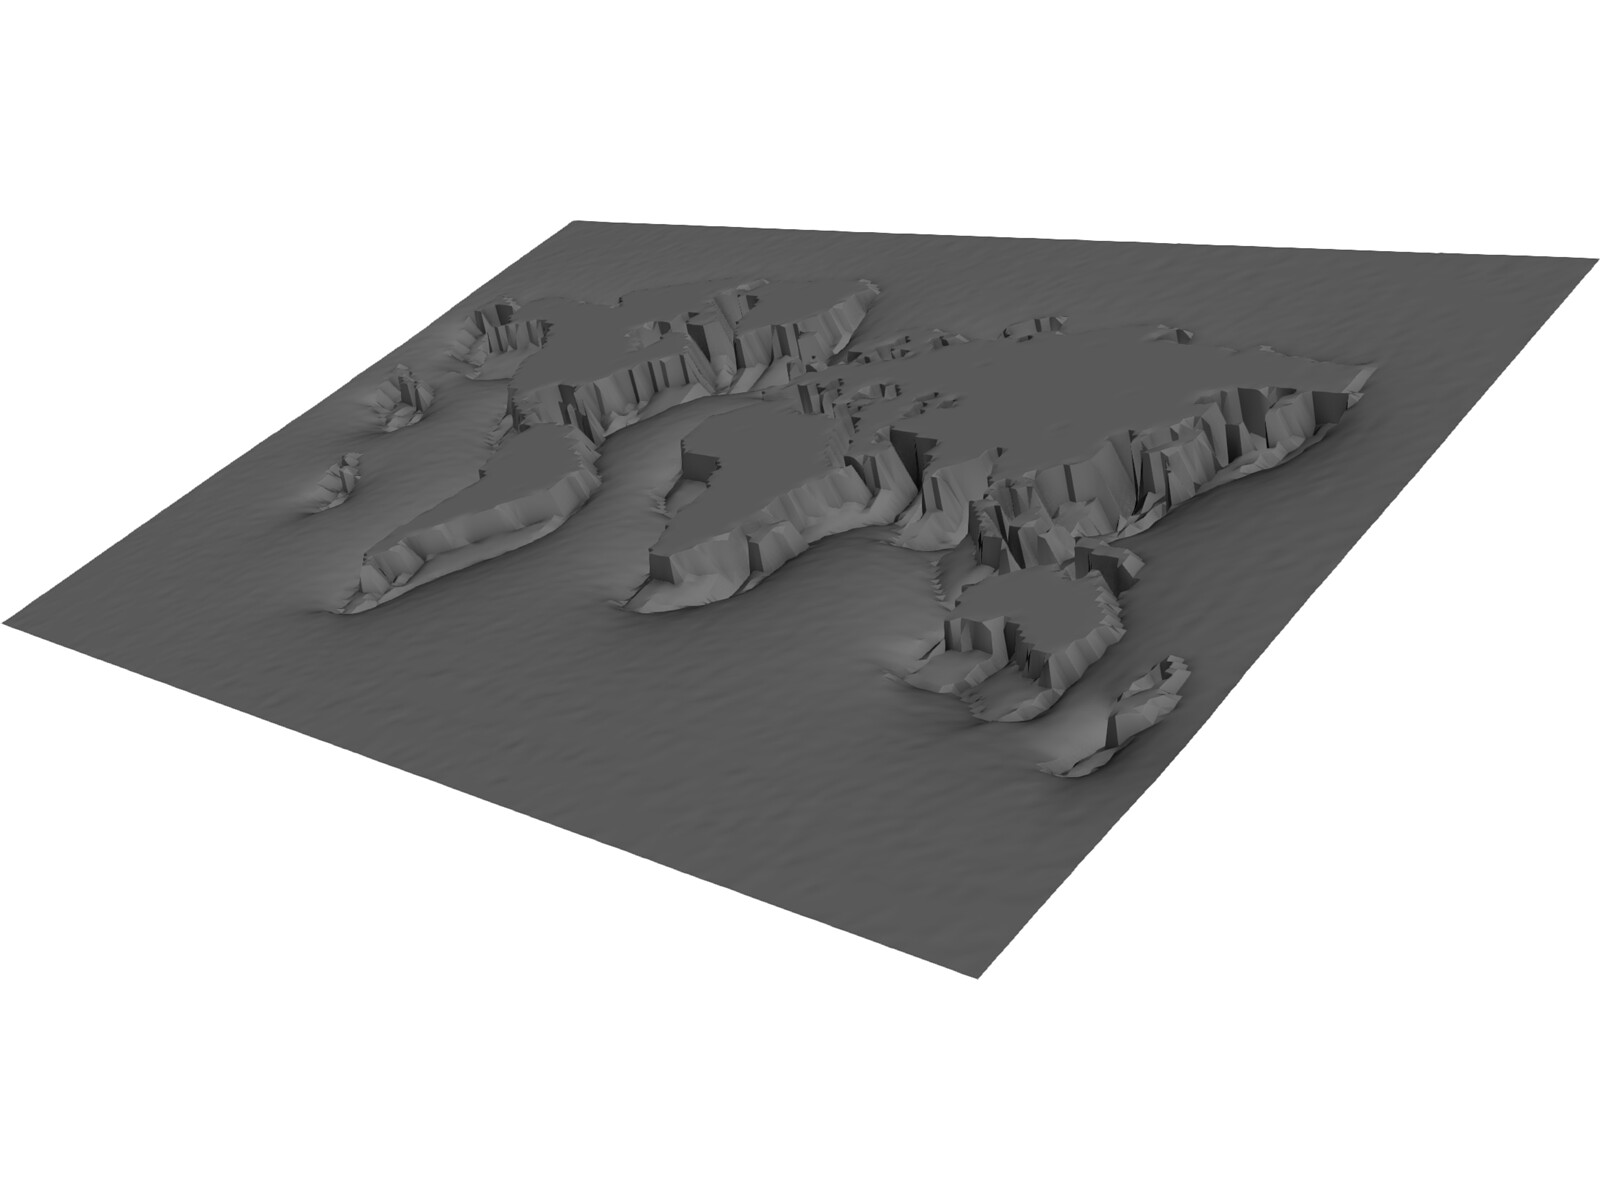 Earth map 3d model 3d cad browser earth map 3d model gumiabroncs Choice Image